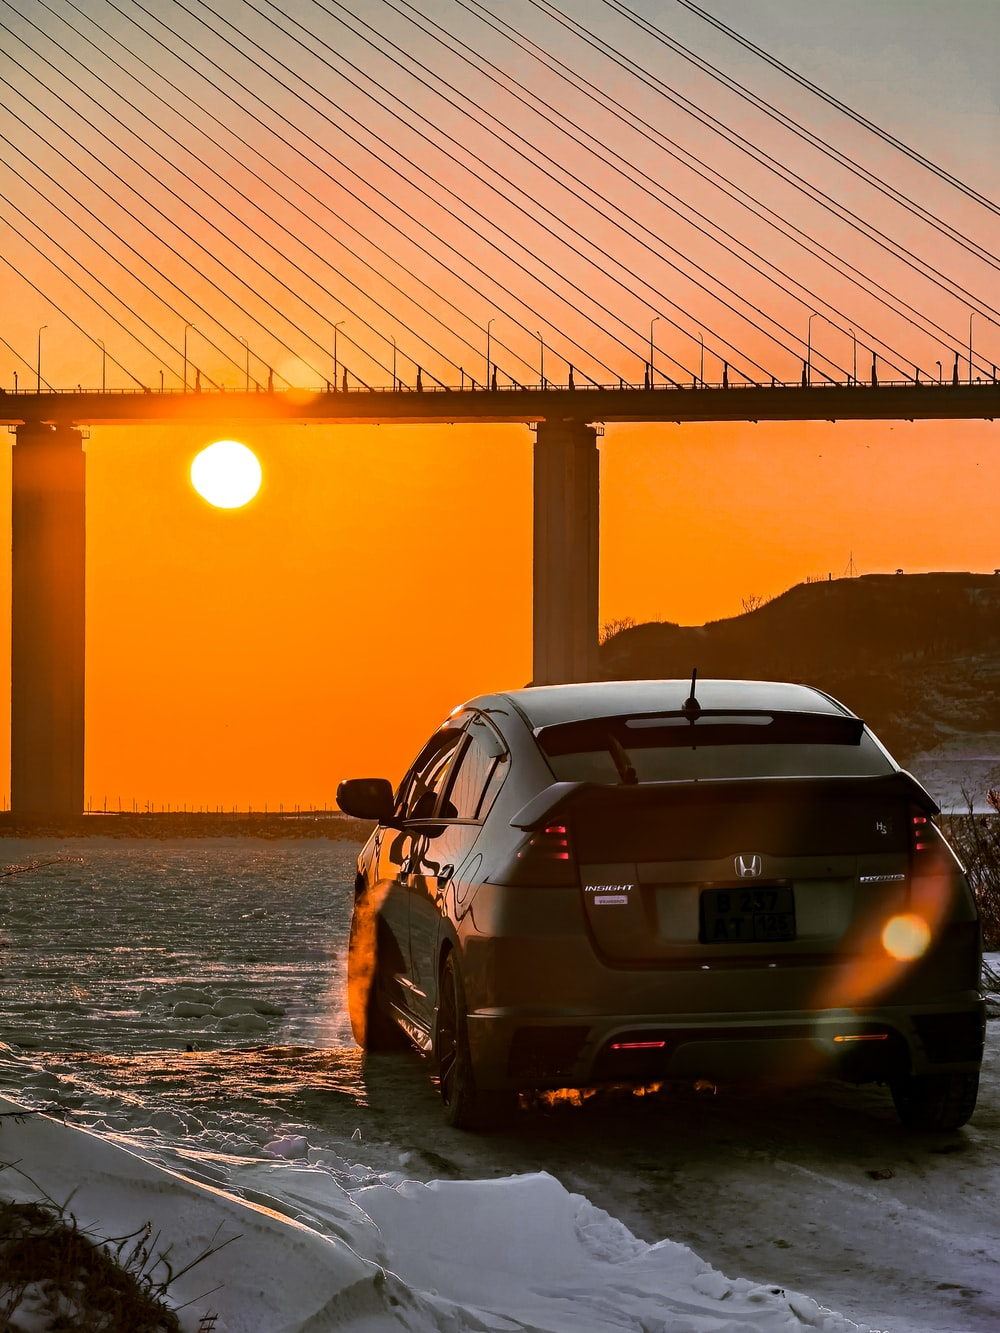 silver bmw m 3 parked on beach shore during sunset